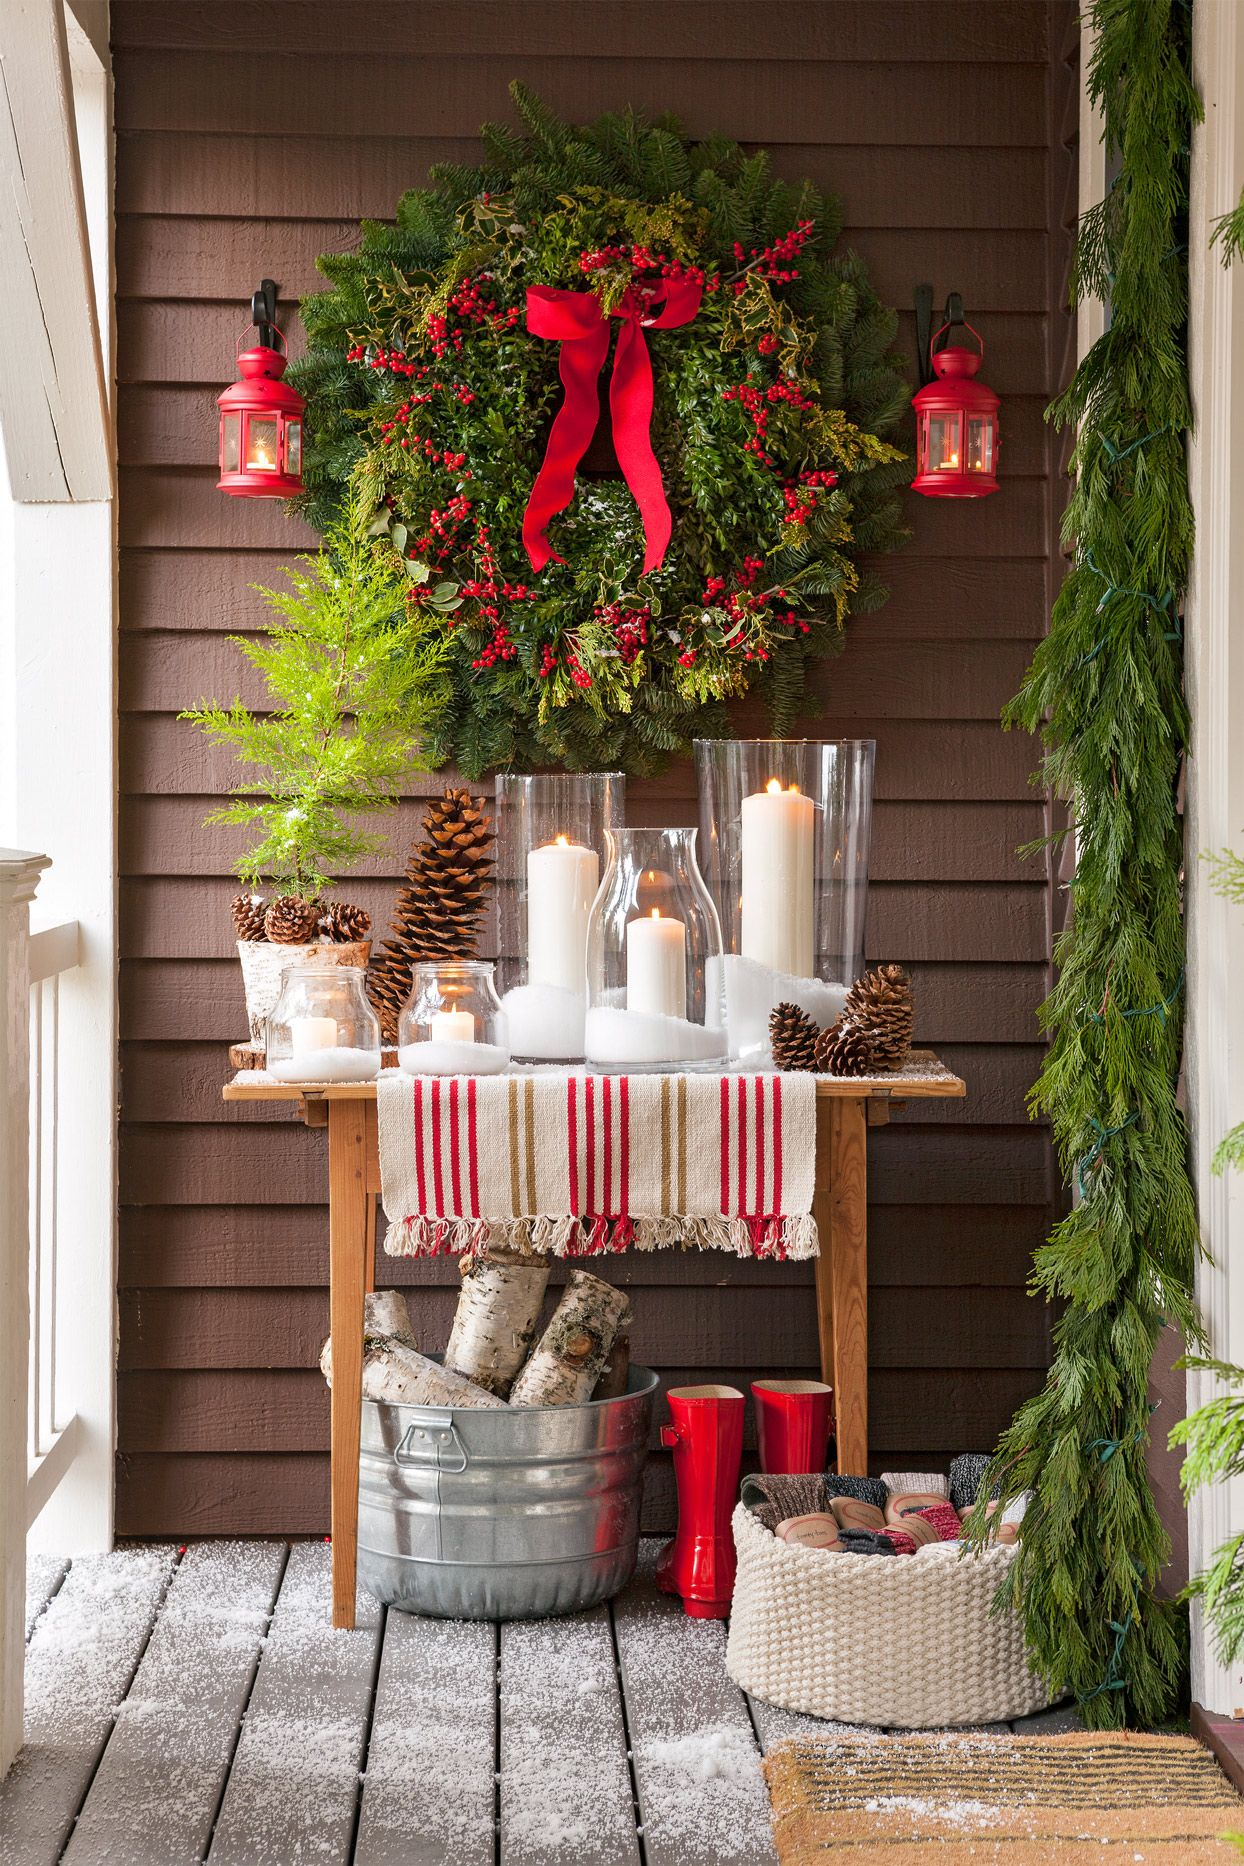 Make the most of sheltered porch corners with an impressive (and easy!) display of candles and greenery. This Christmas front porch display is so easy to recreate! #christmasdecor #outdoorholidaydecor #christmasoutdoordecor #porchdecorations #ideas #bhg